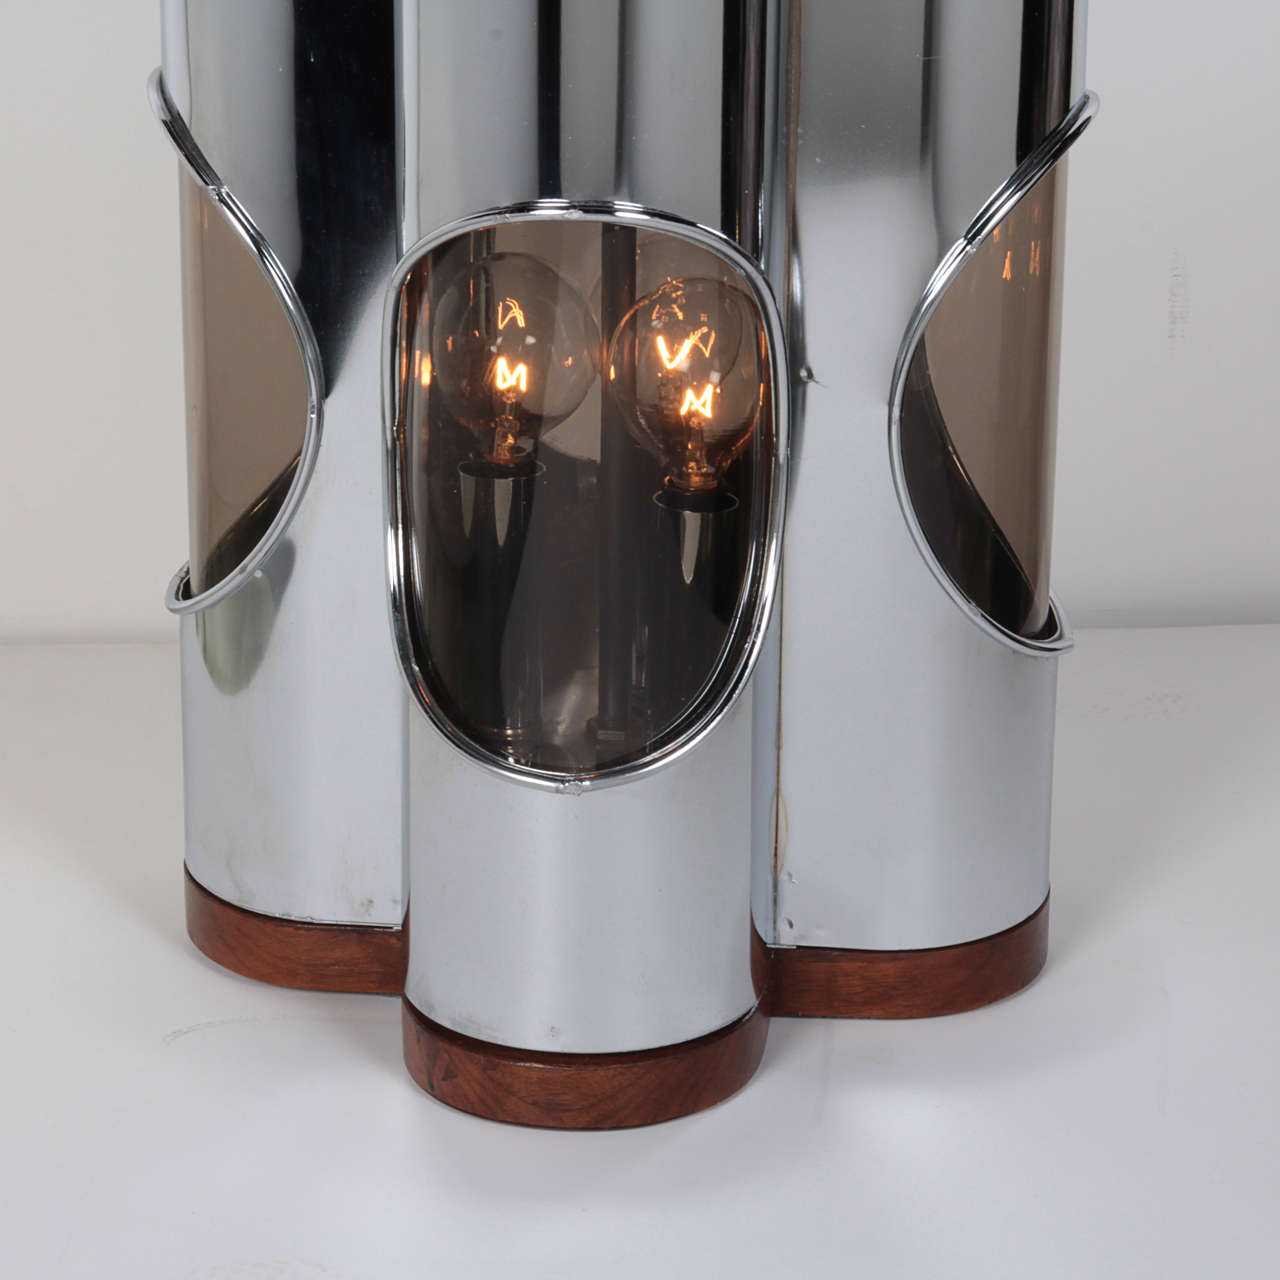 Pair of Sculptural Hollywood Regency Lamps by Laurel In Excellent Condition For Sale In Stamford, CT